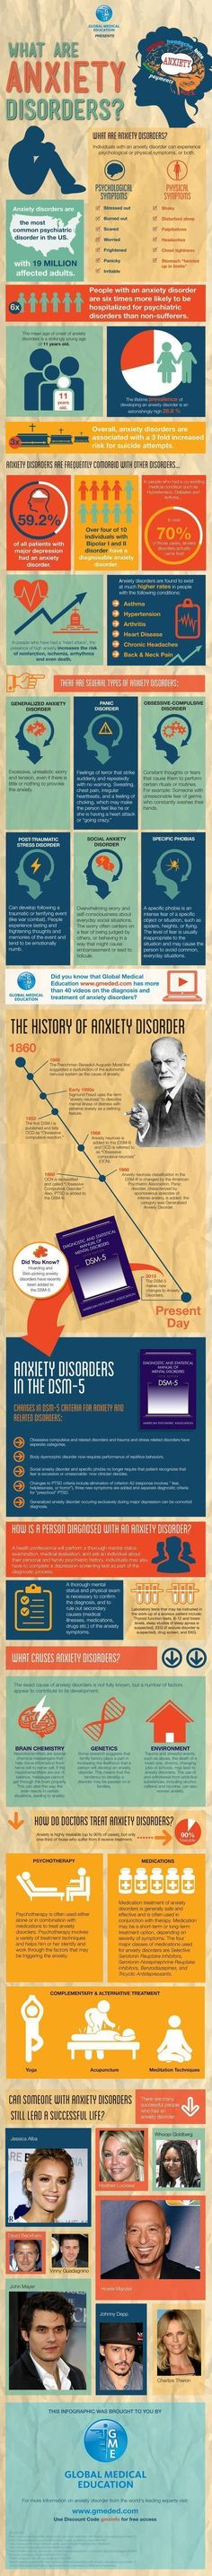 What are anxiety disorders? Let's have a look at this nice infographic explaining what anxiety disorders are. Discover why do several types of disorders exist: - Generalized anxiety disorder - Panic Disorder - Obsessive-Compulsive Disorder - PTSD - Social Anxiety Disorder - Specific Phobias  If you are more interested in phobias, check out what are the most common phobias here: https://mind-globe.com/common-fears/ #SymptomsofAnxietyDisorder #PanicAttackAtWork #socialanxiety